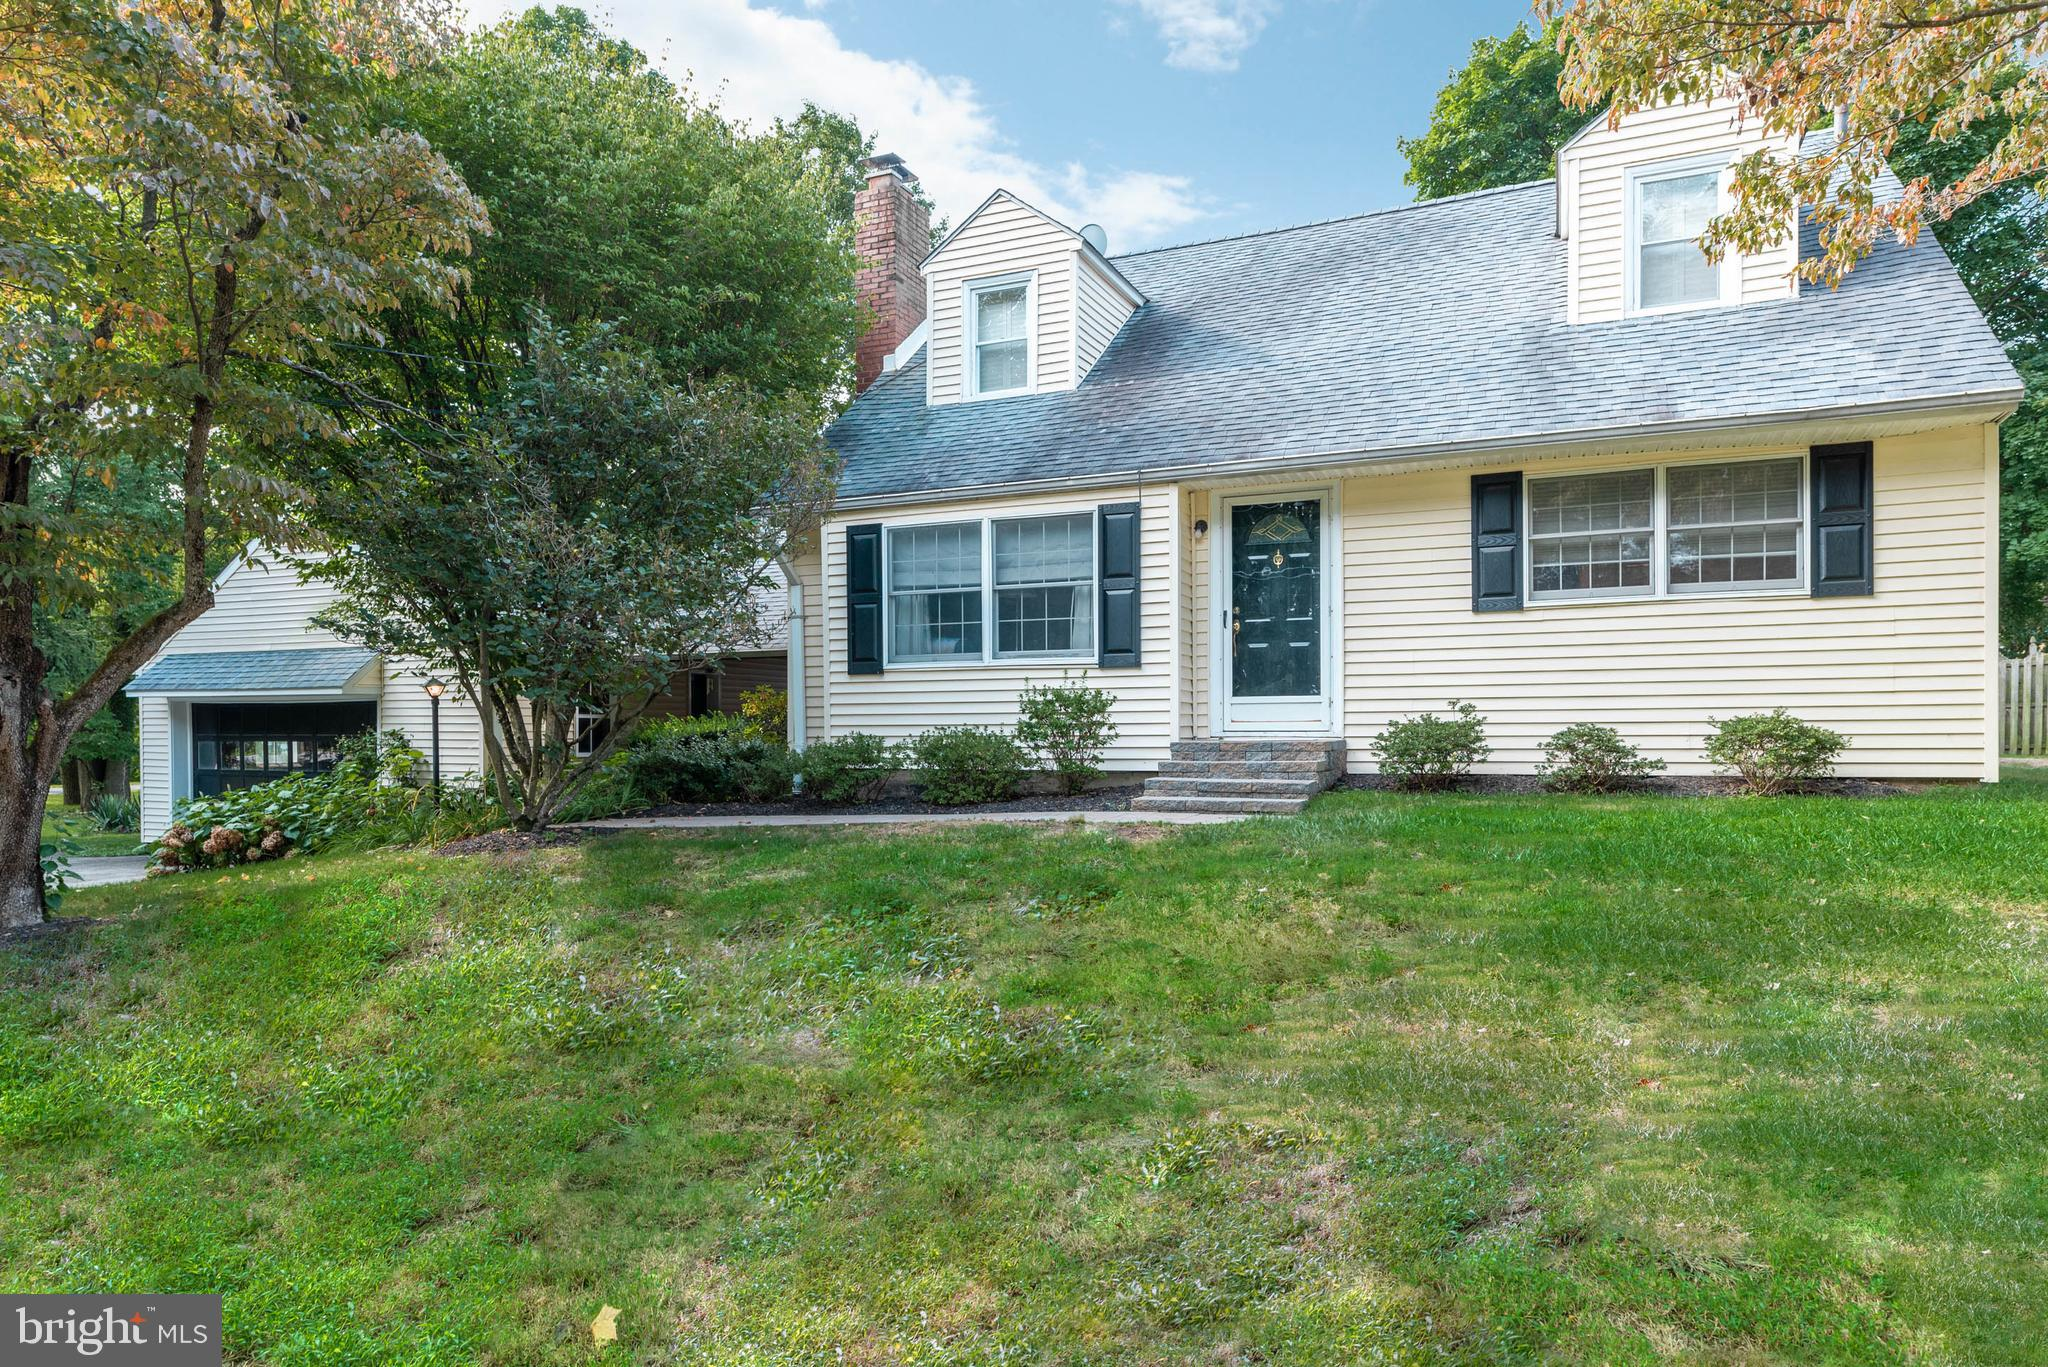 310 W ROSE VALLEY ROAD, WALLINGFORD, PA 19086